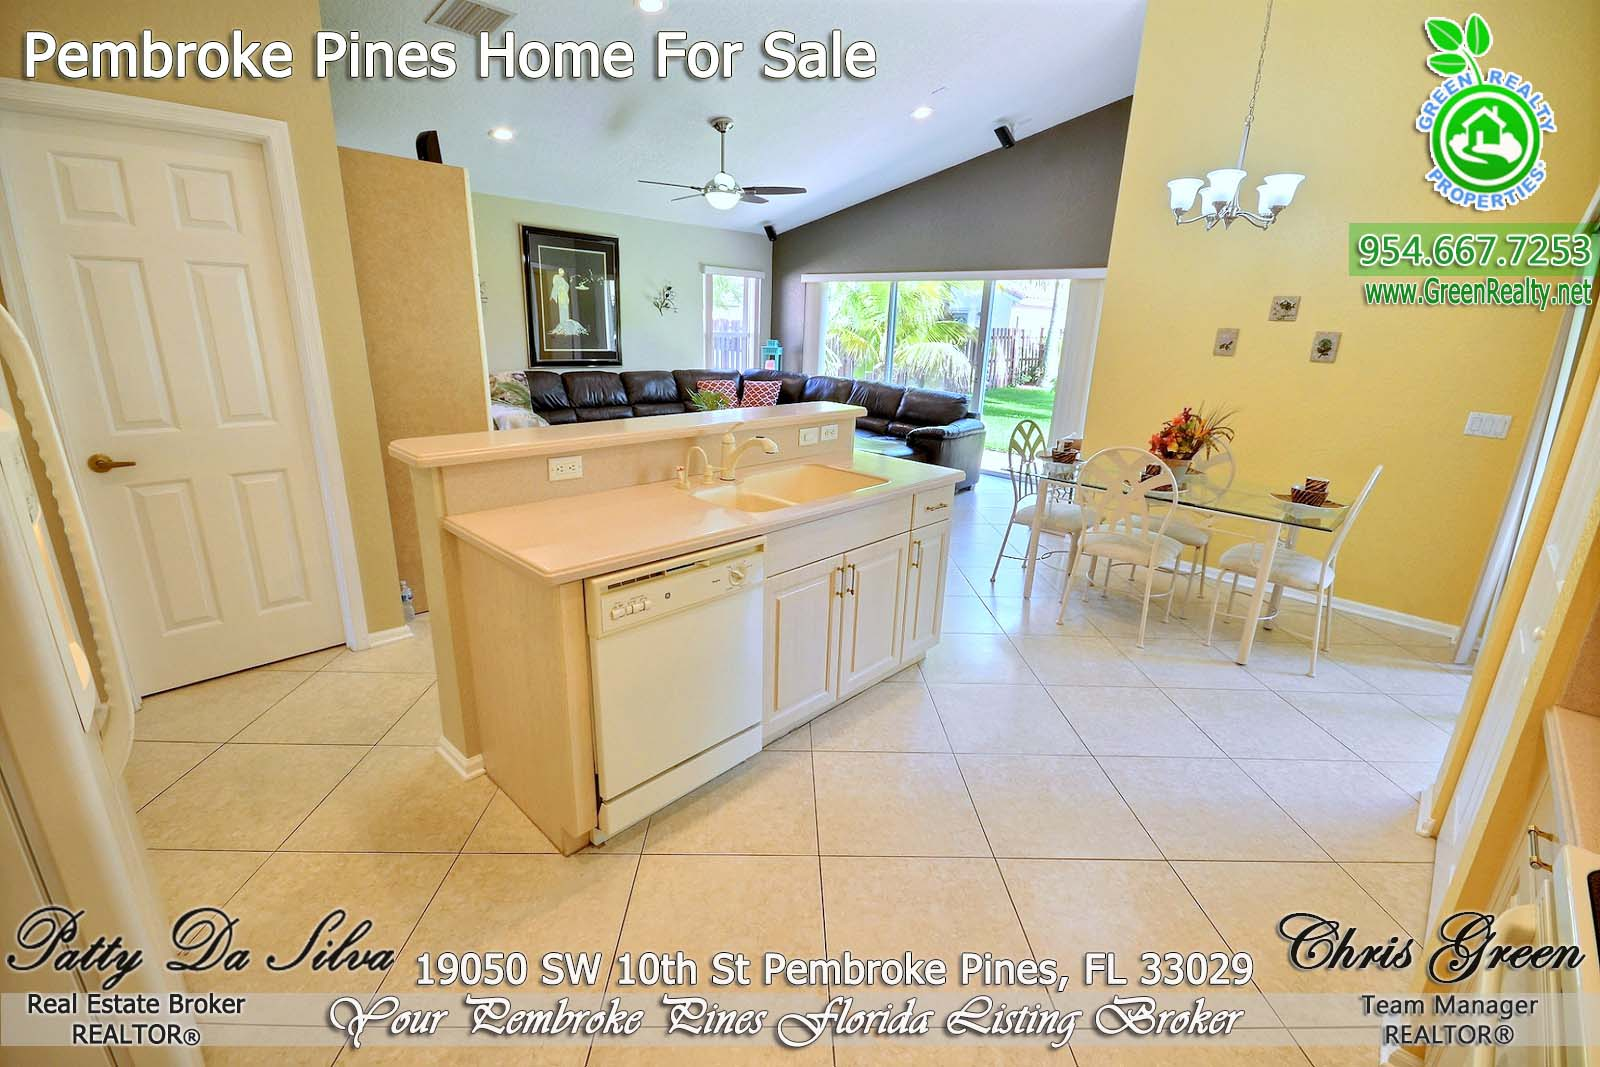 14 Real Estate in Pembroke Pines Florida (1)